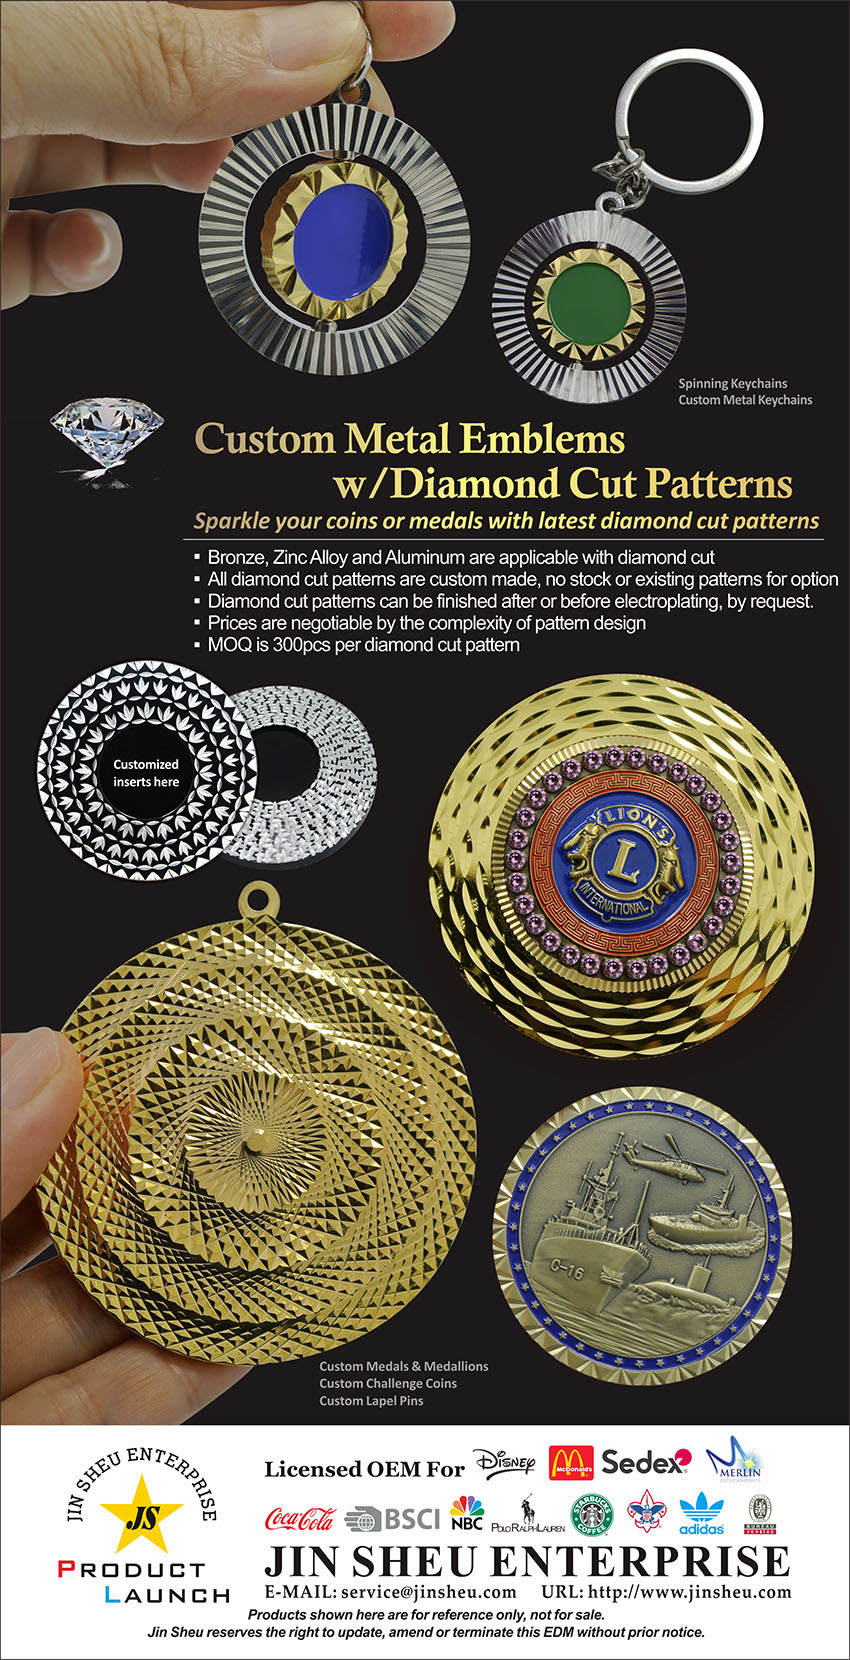 custom metal emblems